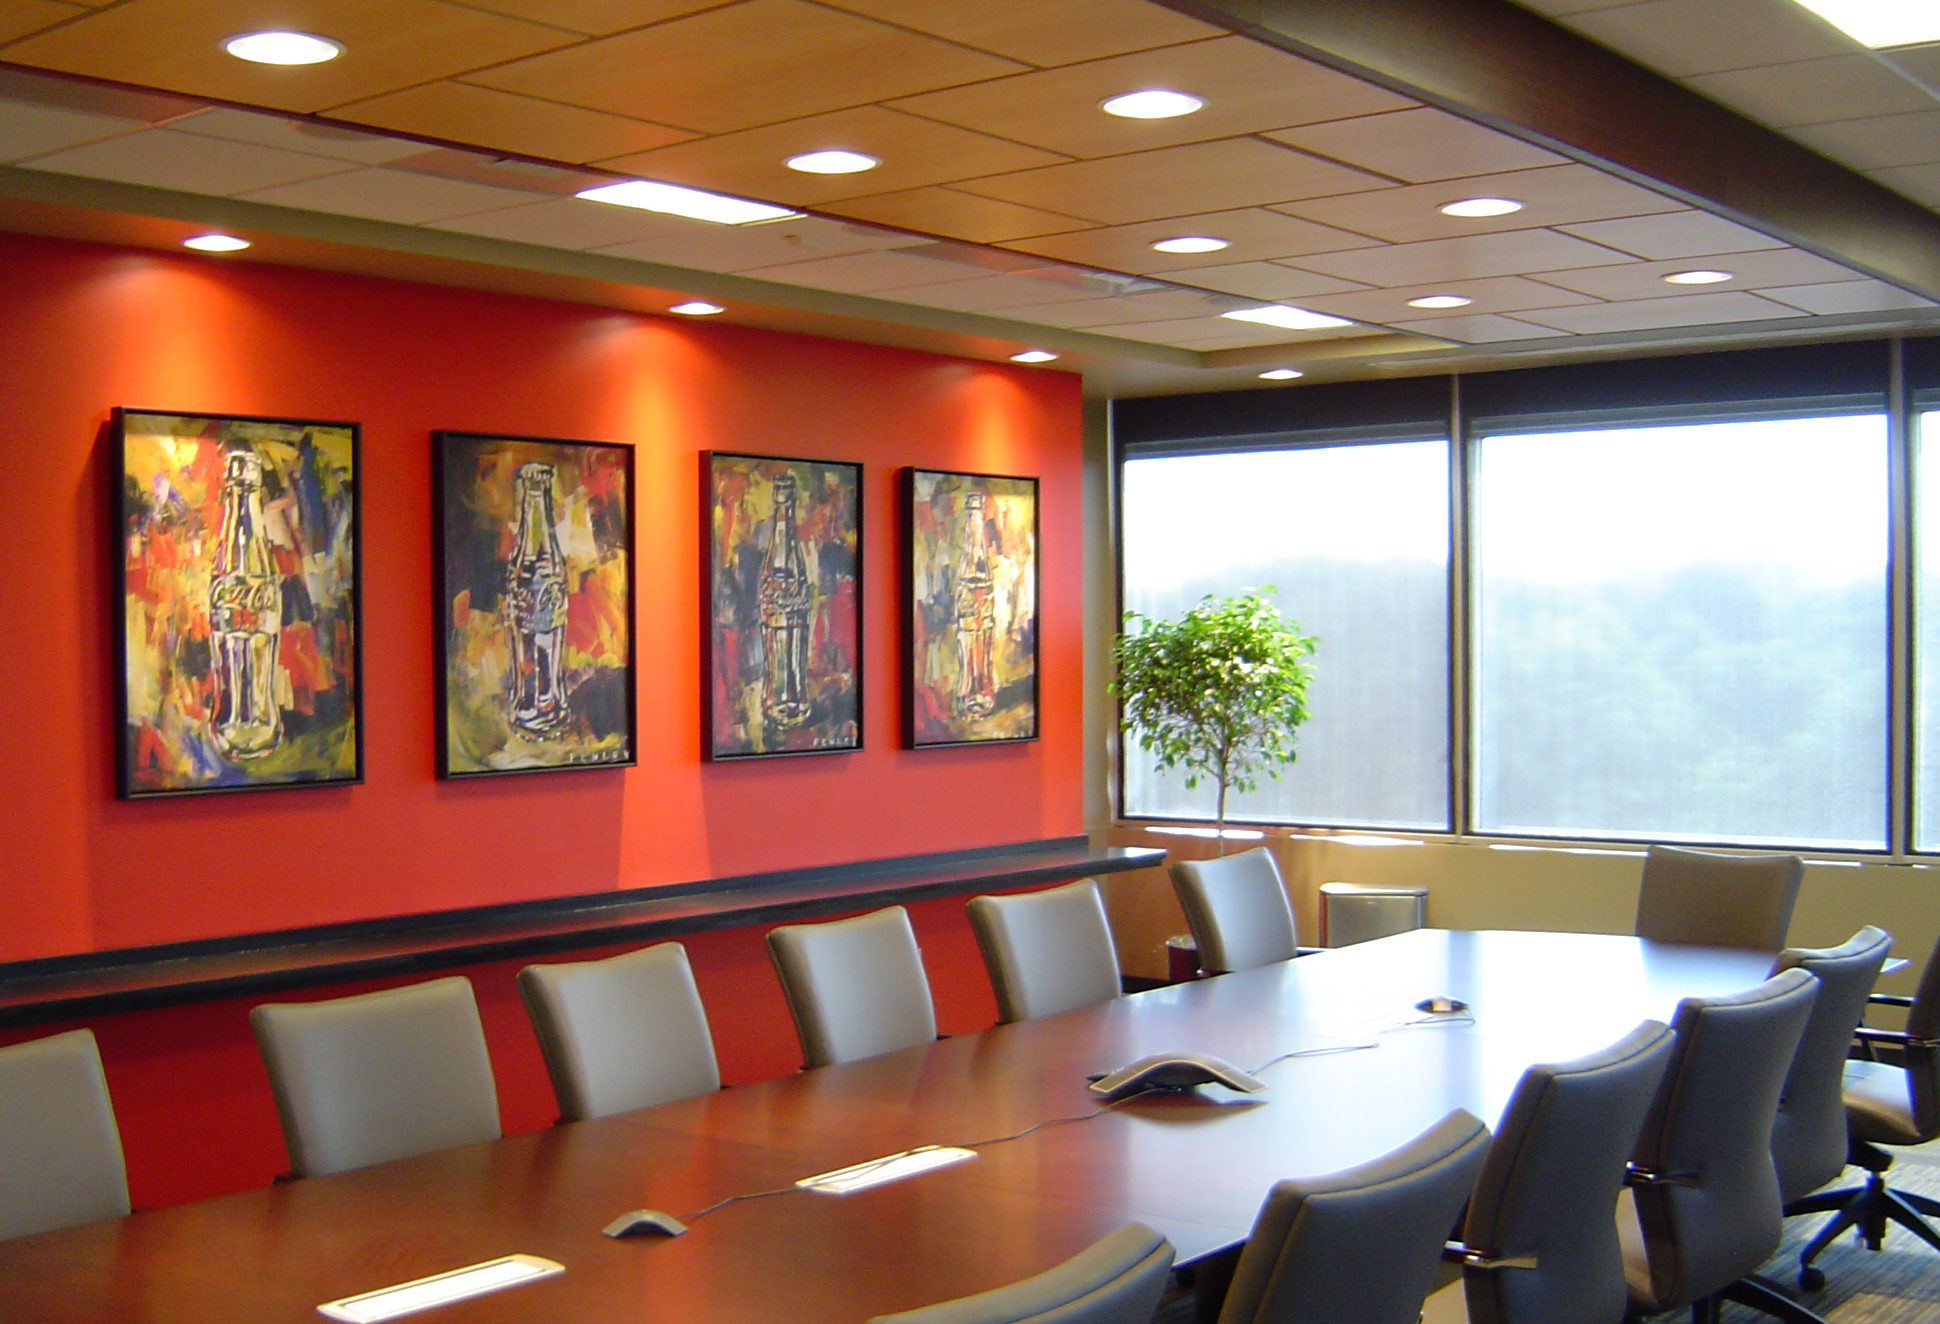 ADW-Office+Mixed-Use-Coca-Cola-Bottling-Company-Consolidated-Renovations-Charlotte-NC-conference-2.jpg